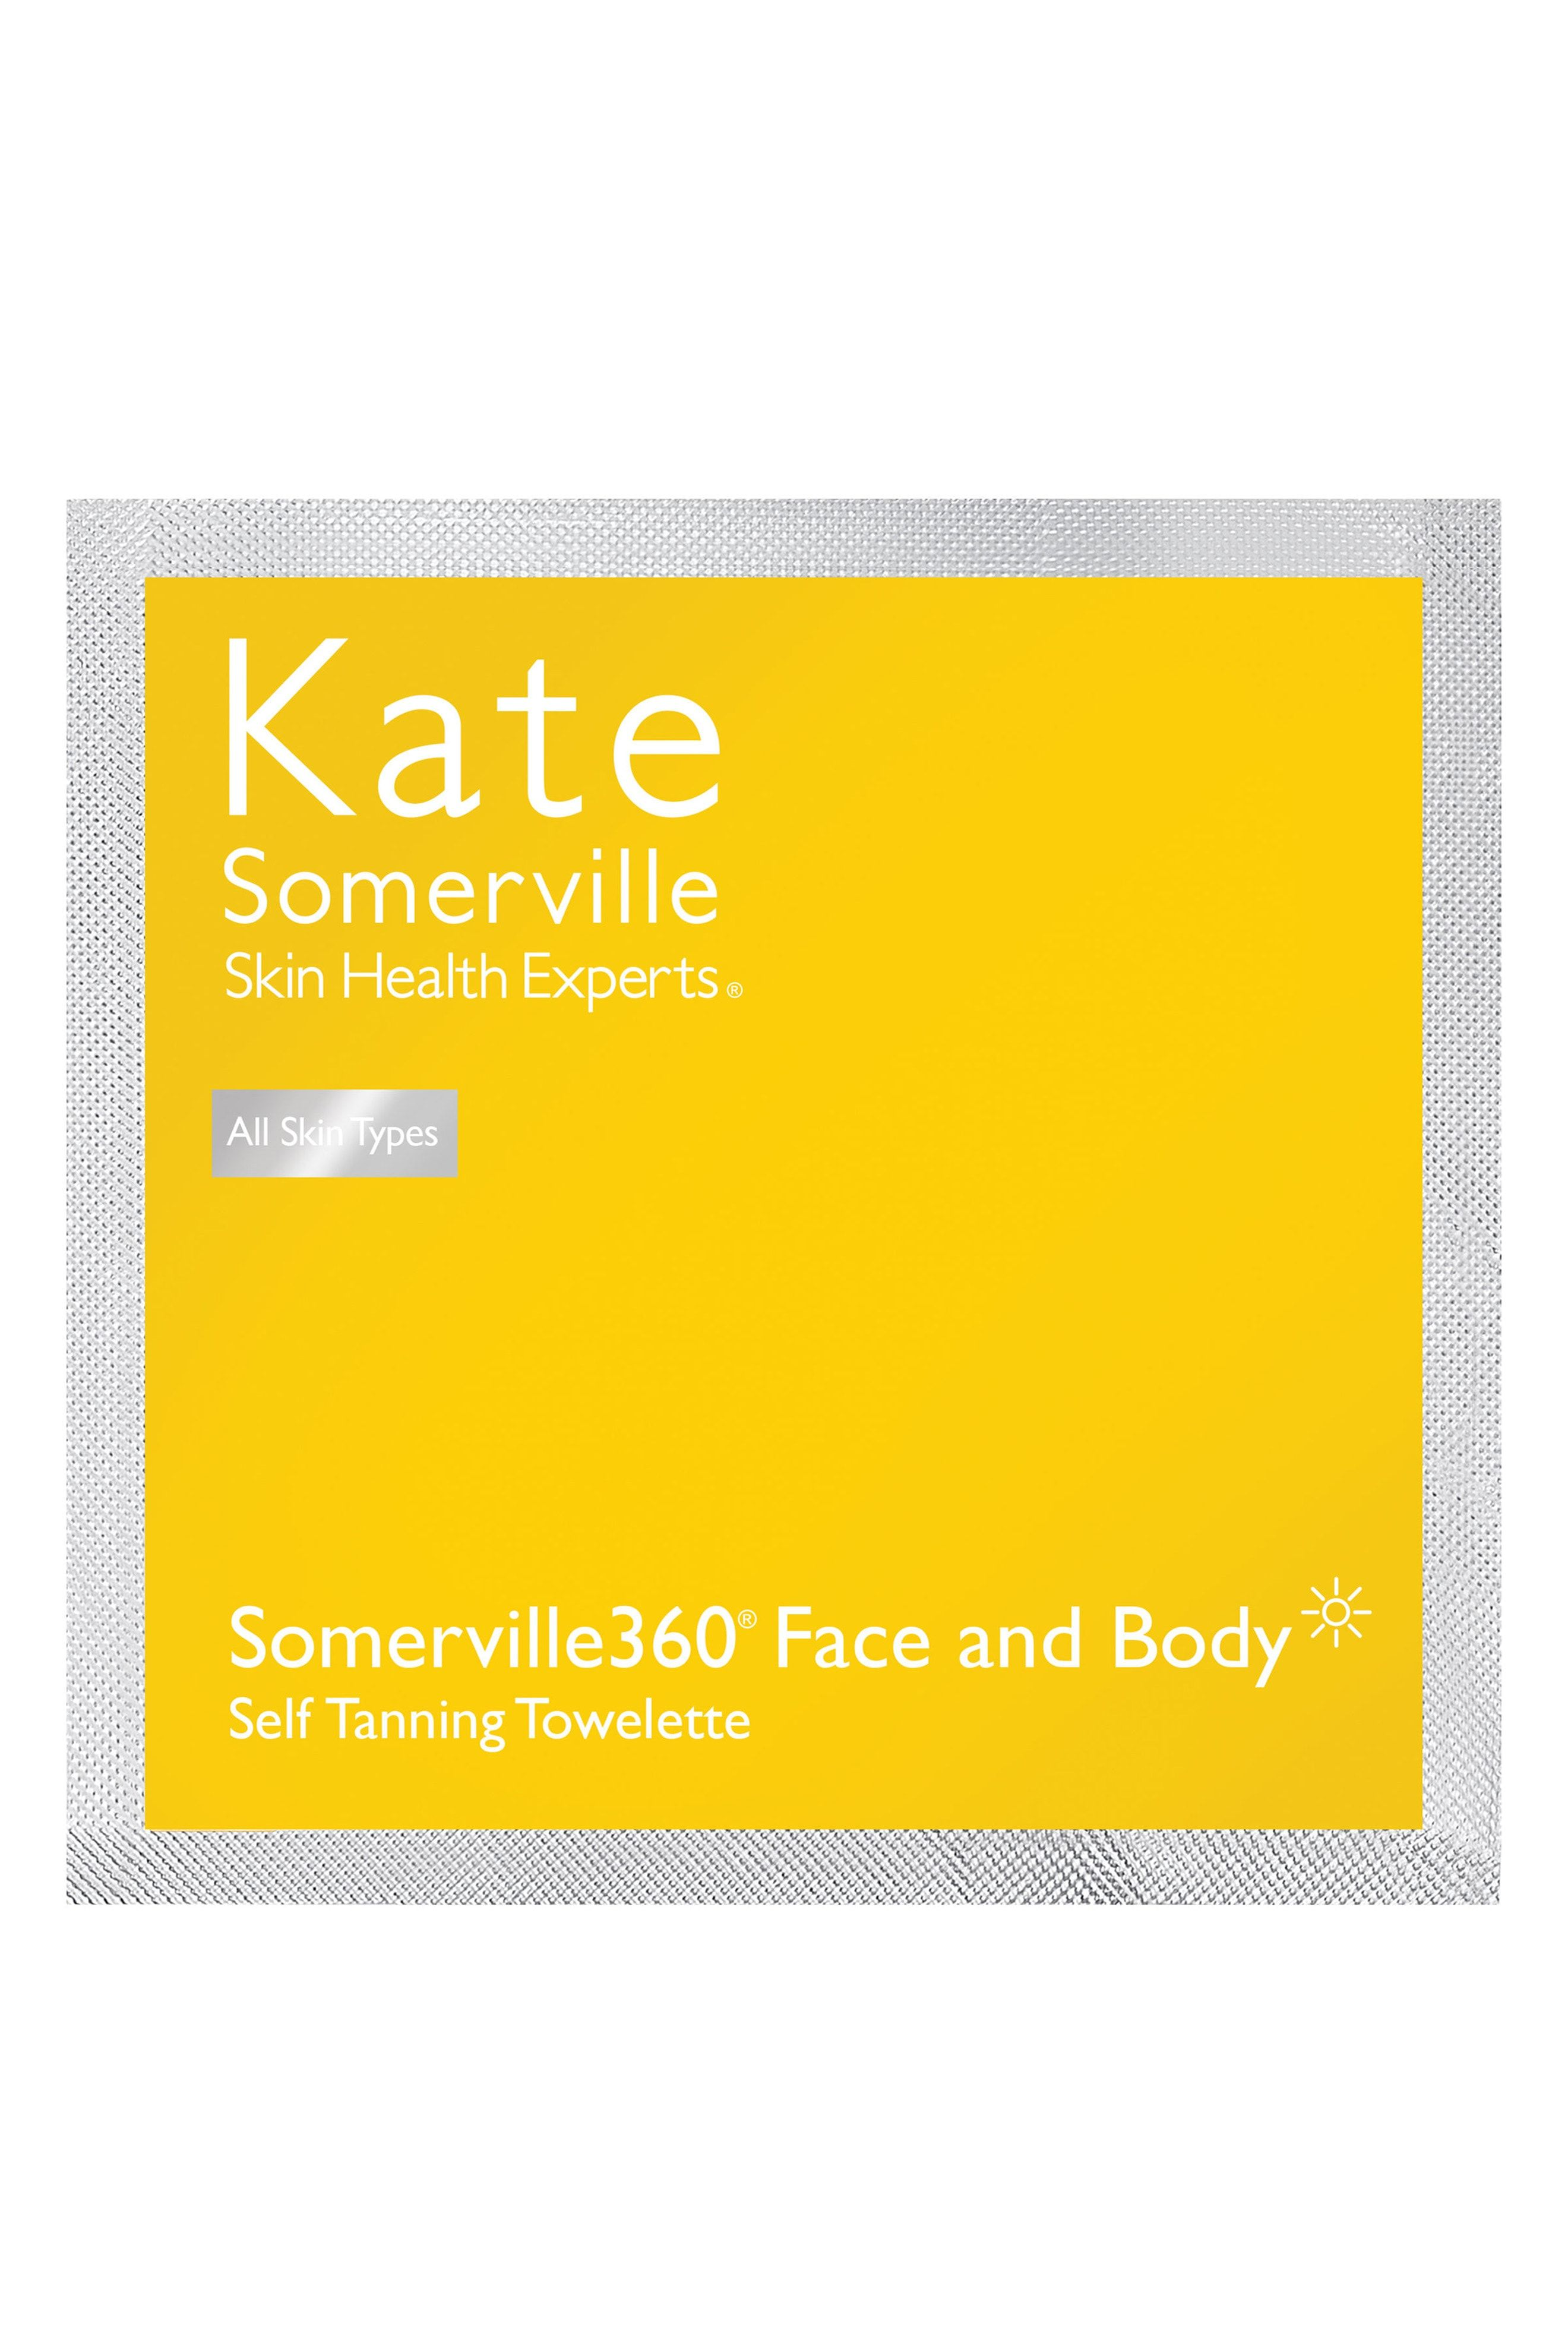 Face and Body Tanning Towelettes